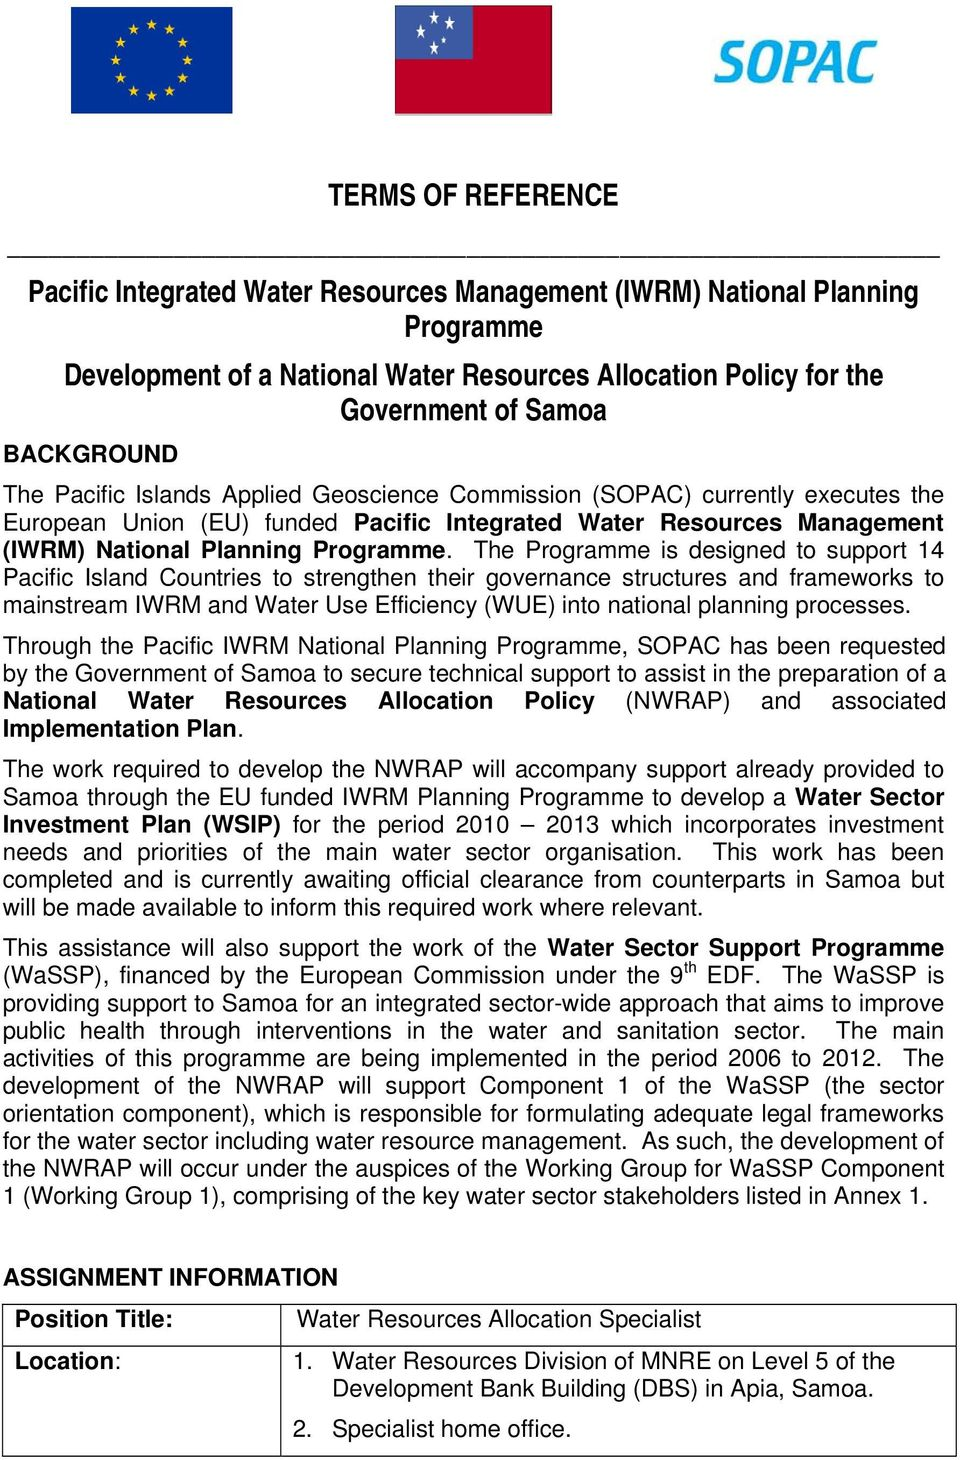 The Programme is designed to support 14 Pacific Island Countries to strengthen their governance structures and frameworks to mainstream IWRM and Water Use Efficiency (WUE) into national planning